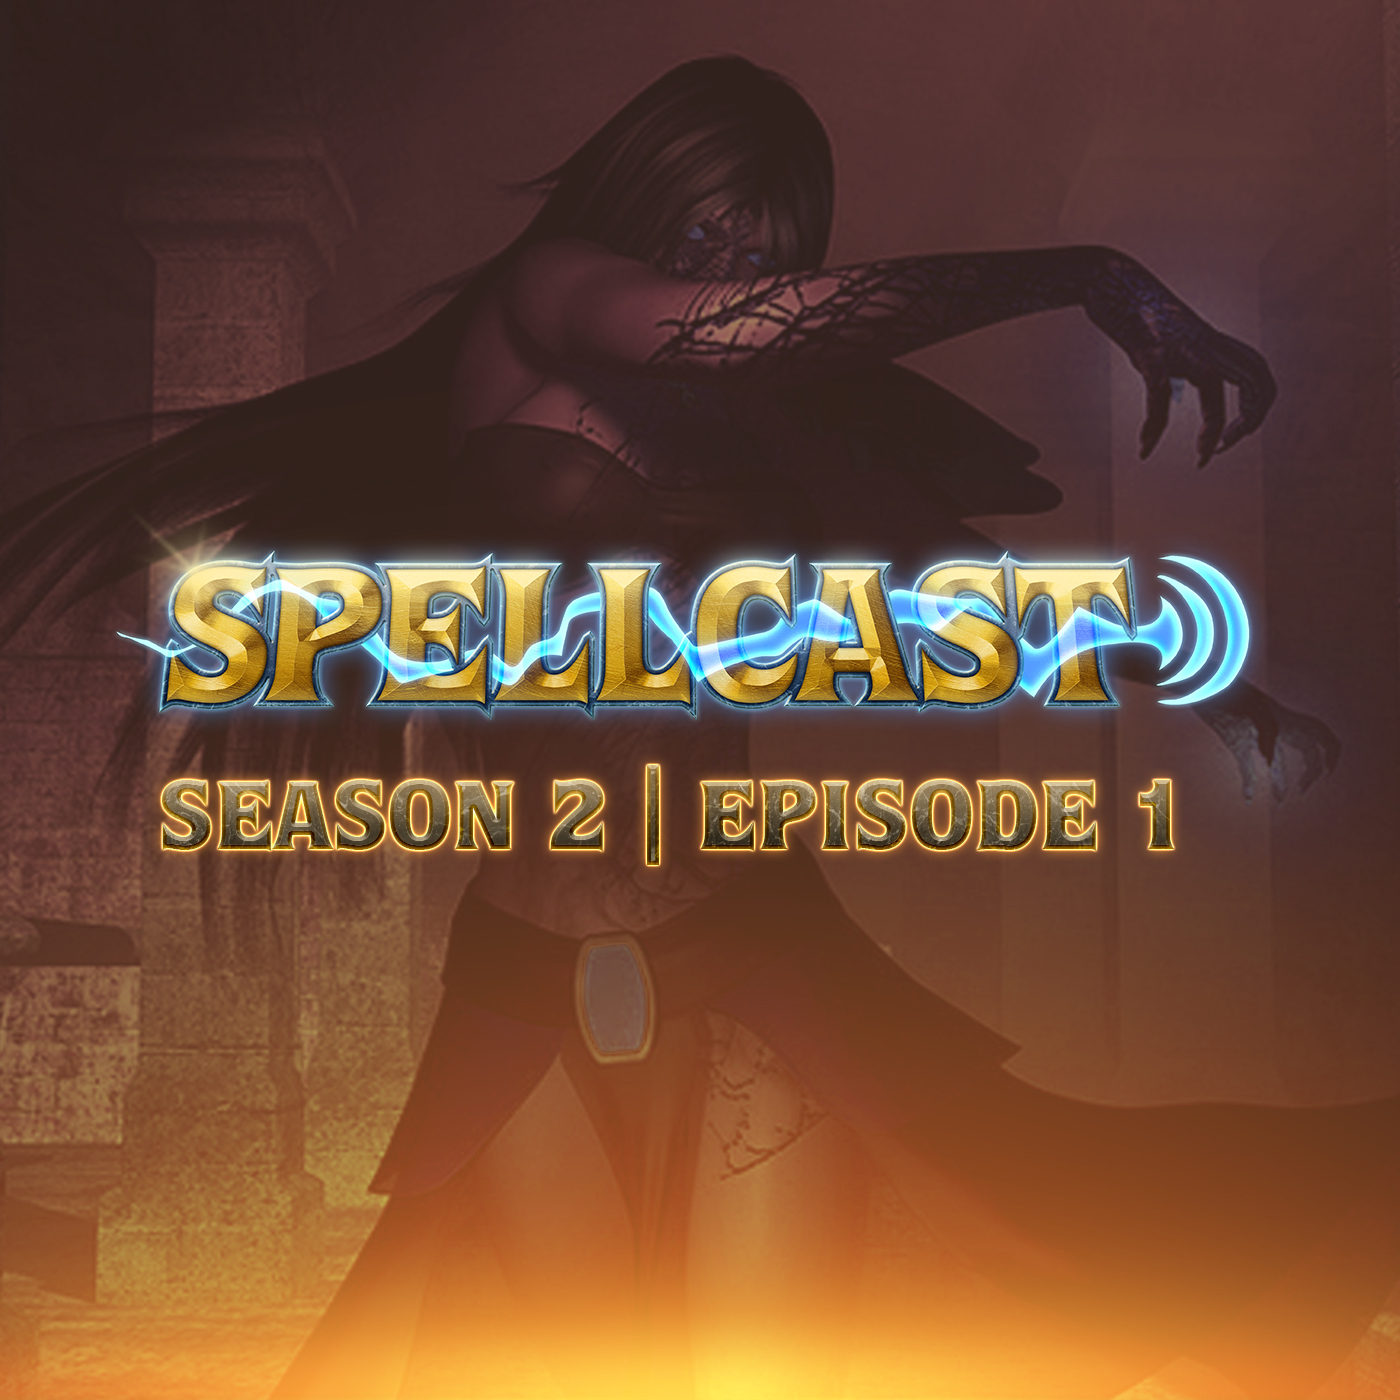 Spellcast Season 2 Episode 1